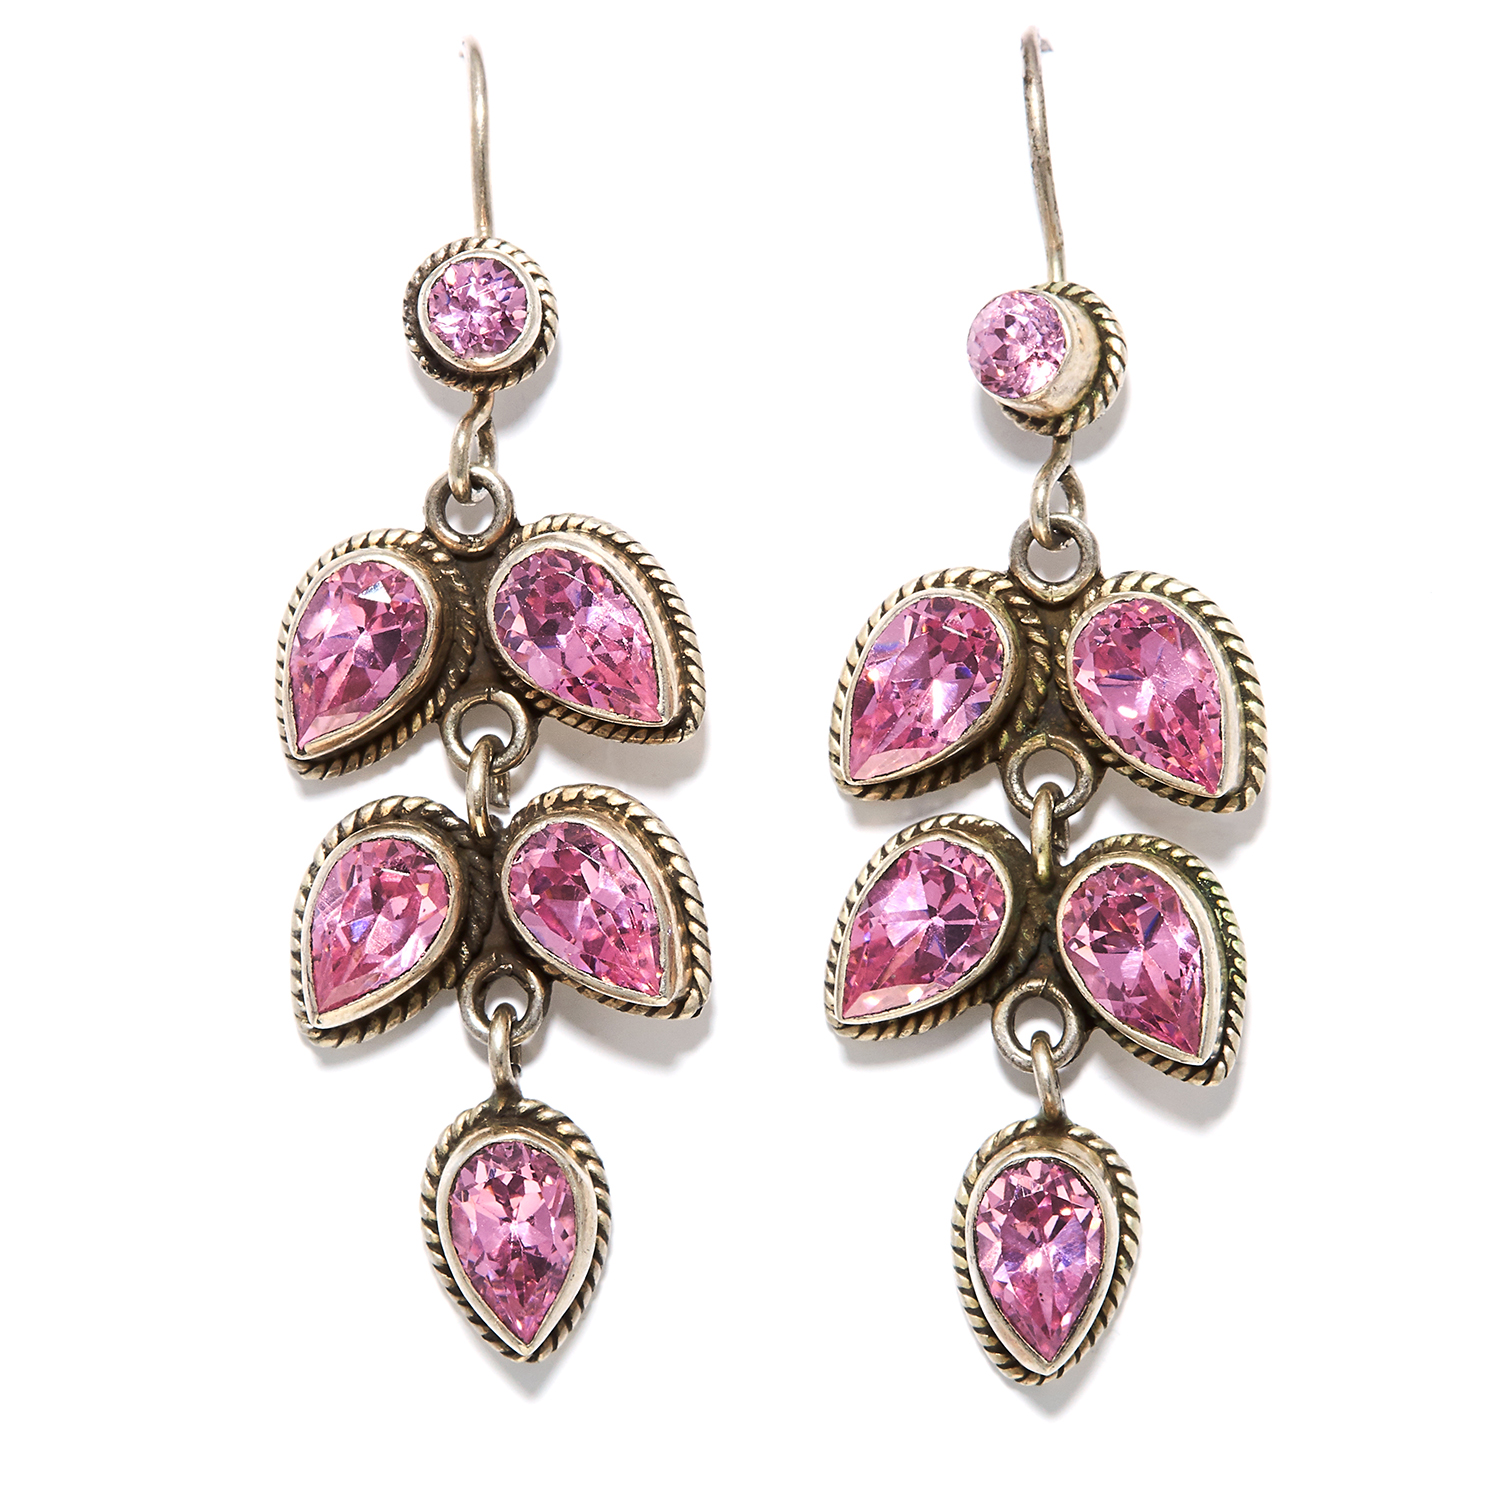 A PAIR OF GEM SET EARRINGS in sterling silver, set with round and pear cut pink gemstones, stamped